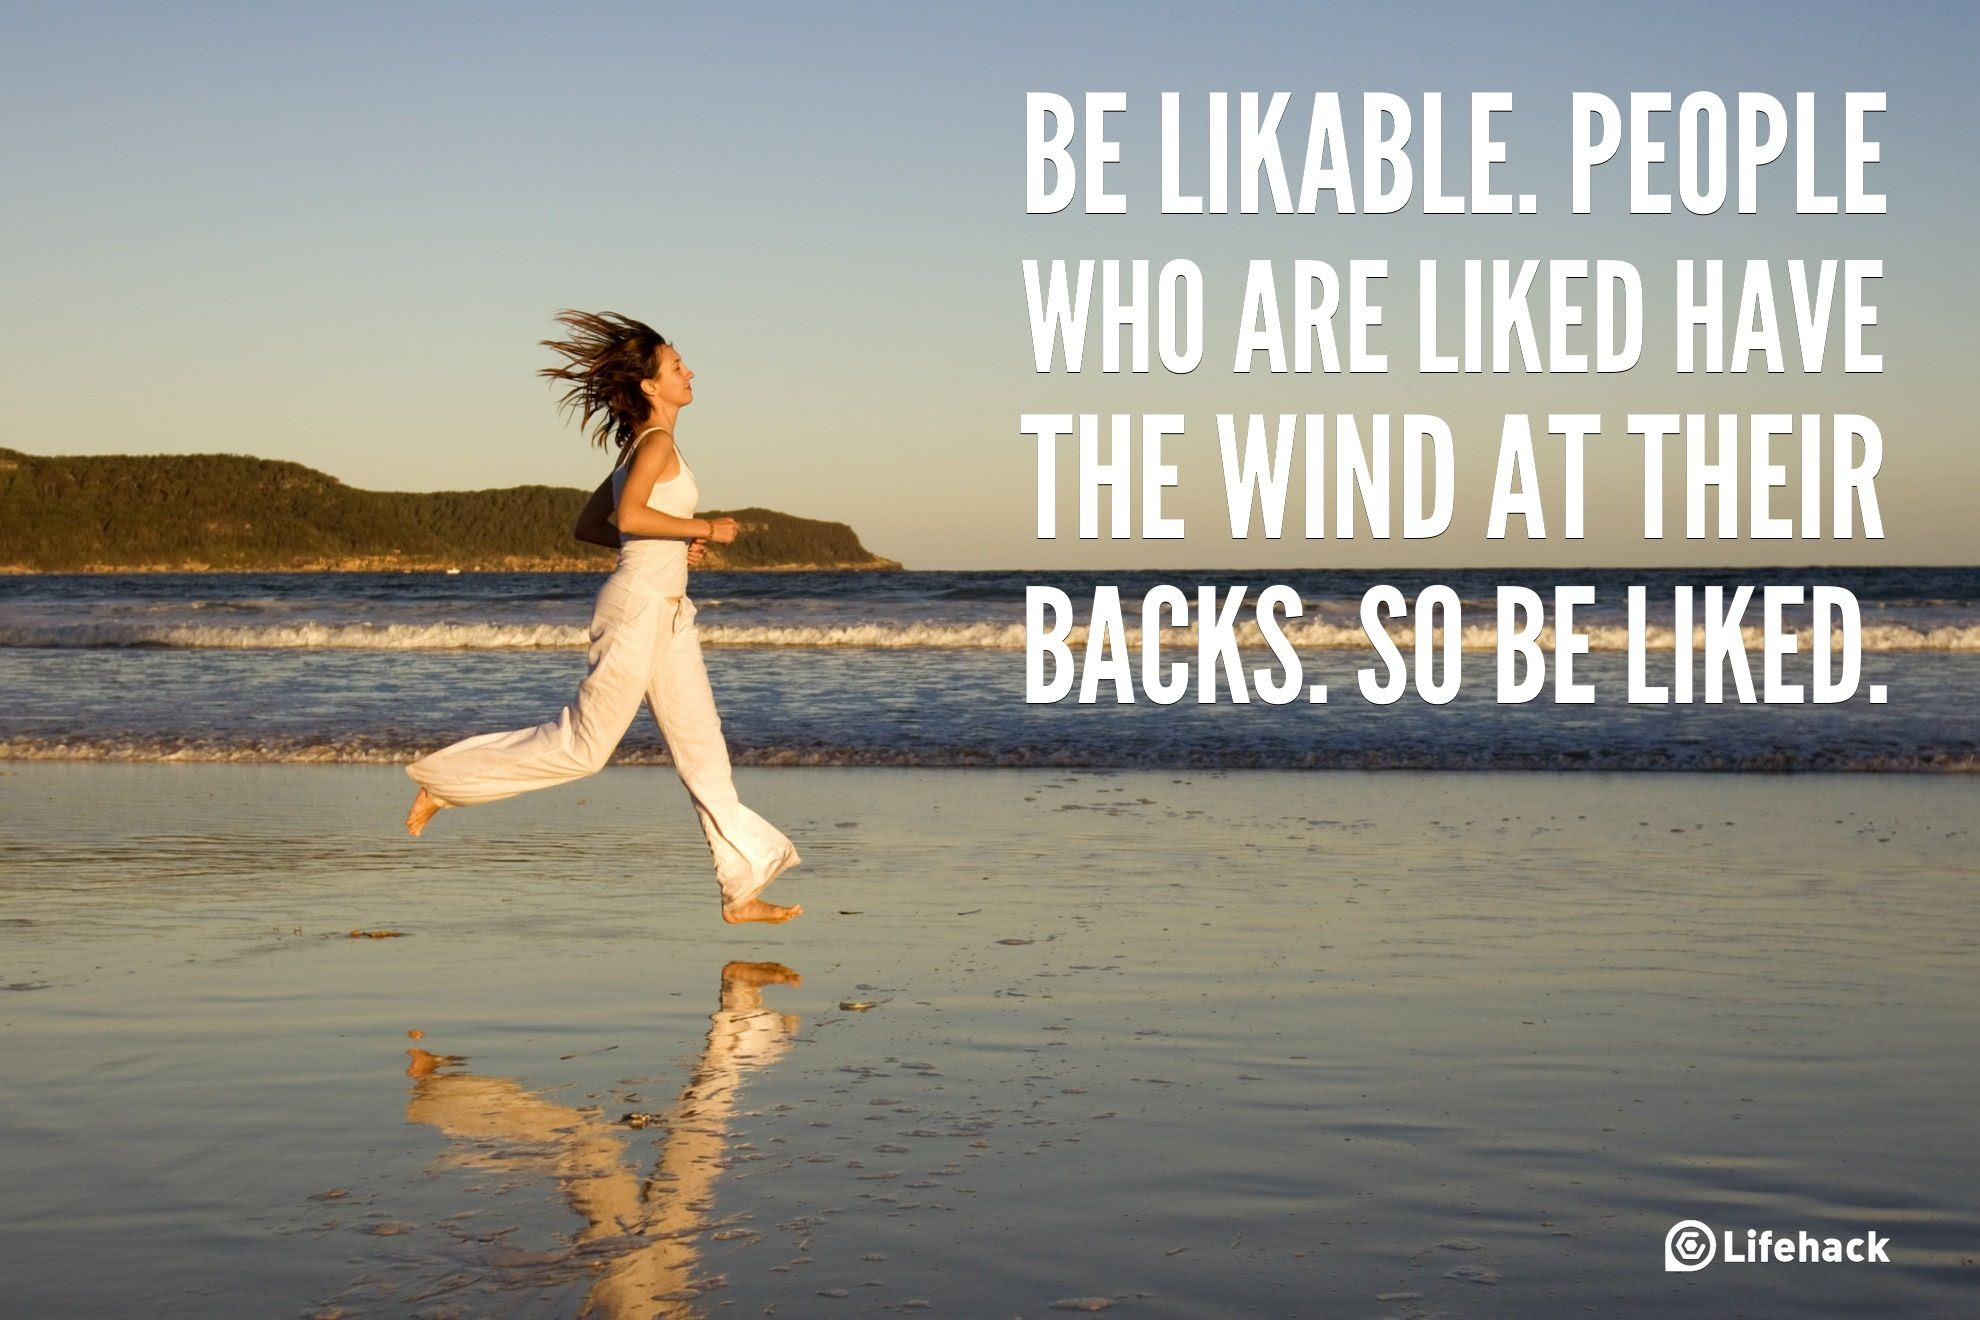 http://cdn-media-1.lifehack.org/wp-content/files/2013/03/Be-likable.jpg